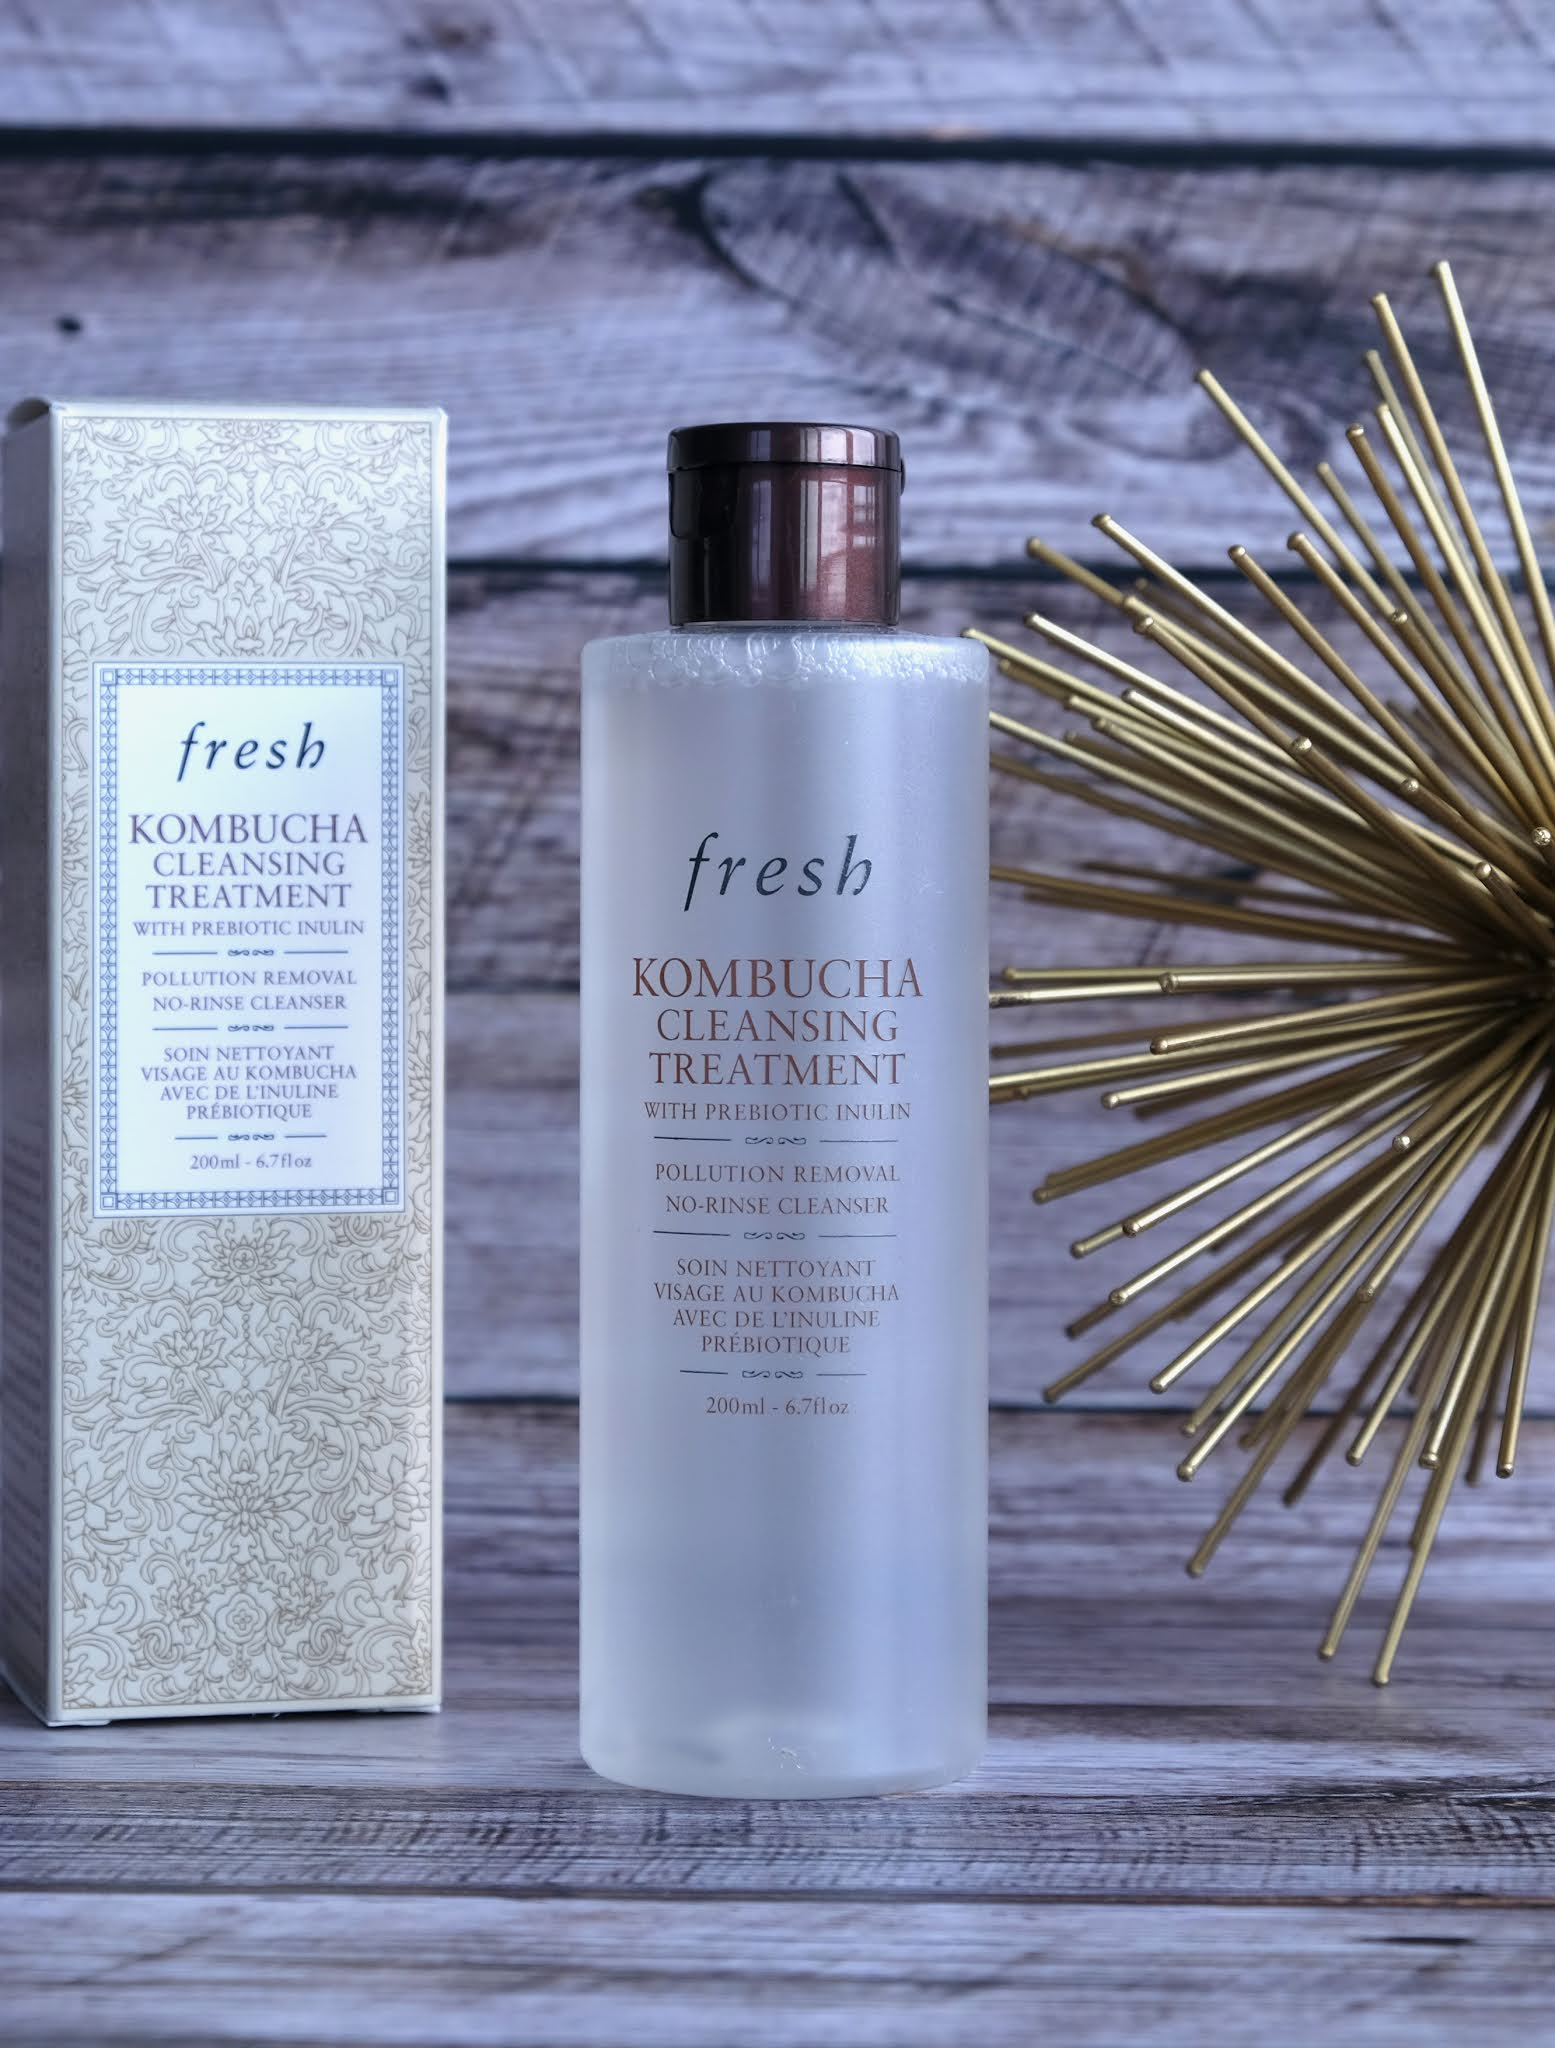 Fresh | Kombucha 2-in-1 No-Rinse Cleanser & Prebiotic Treatment: Review